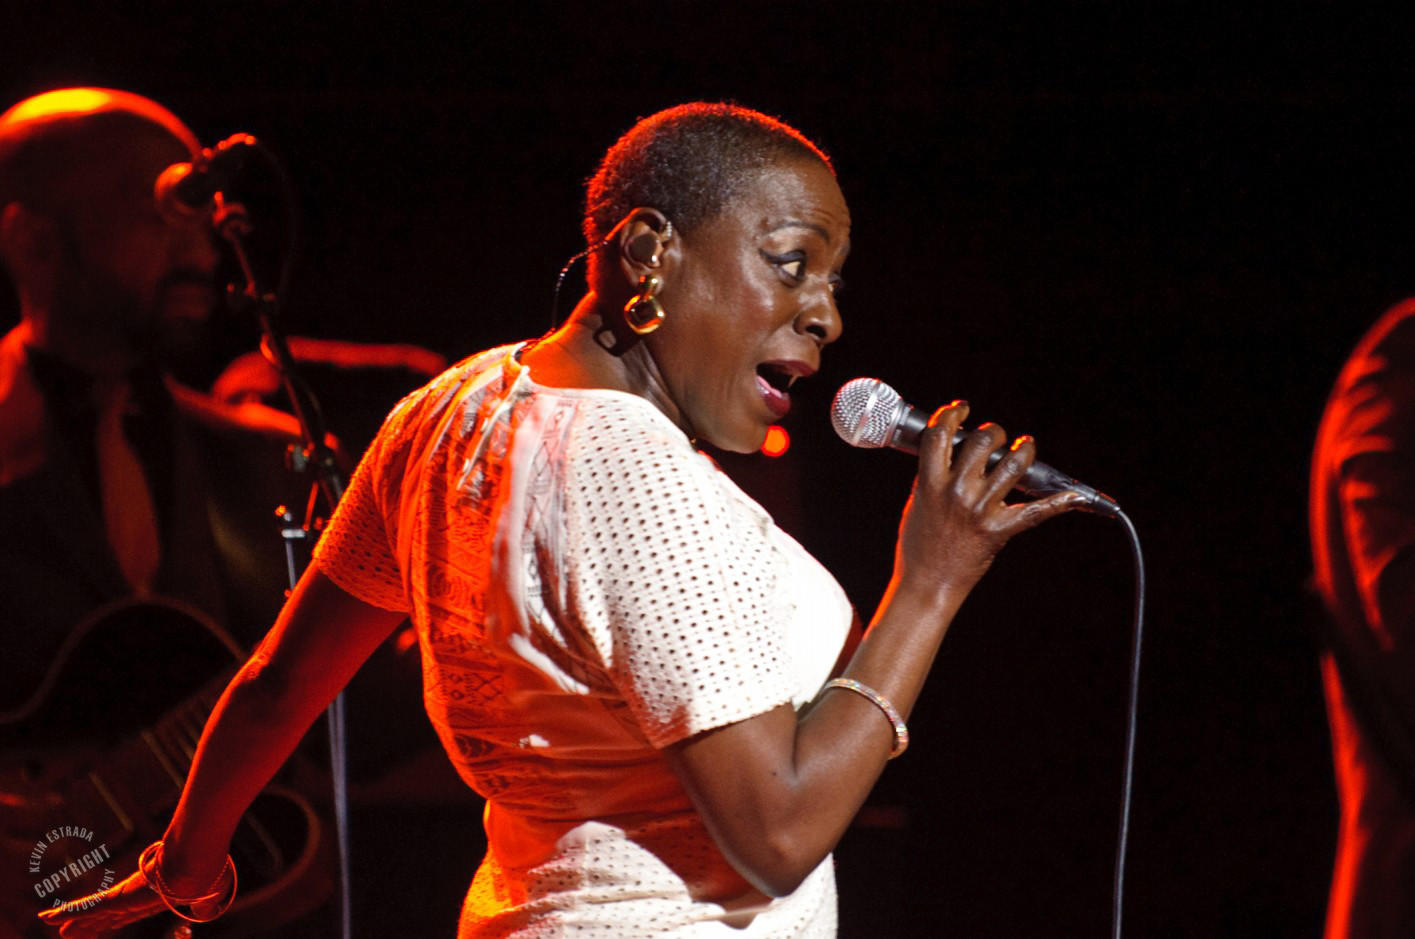 Sharon Jones & the Dap-Kings at the Wiltern Theatre in Los Angeles on Tuesday.